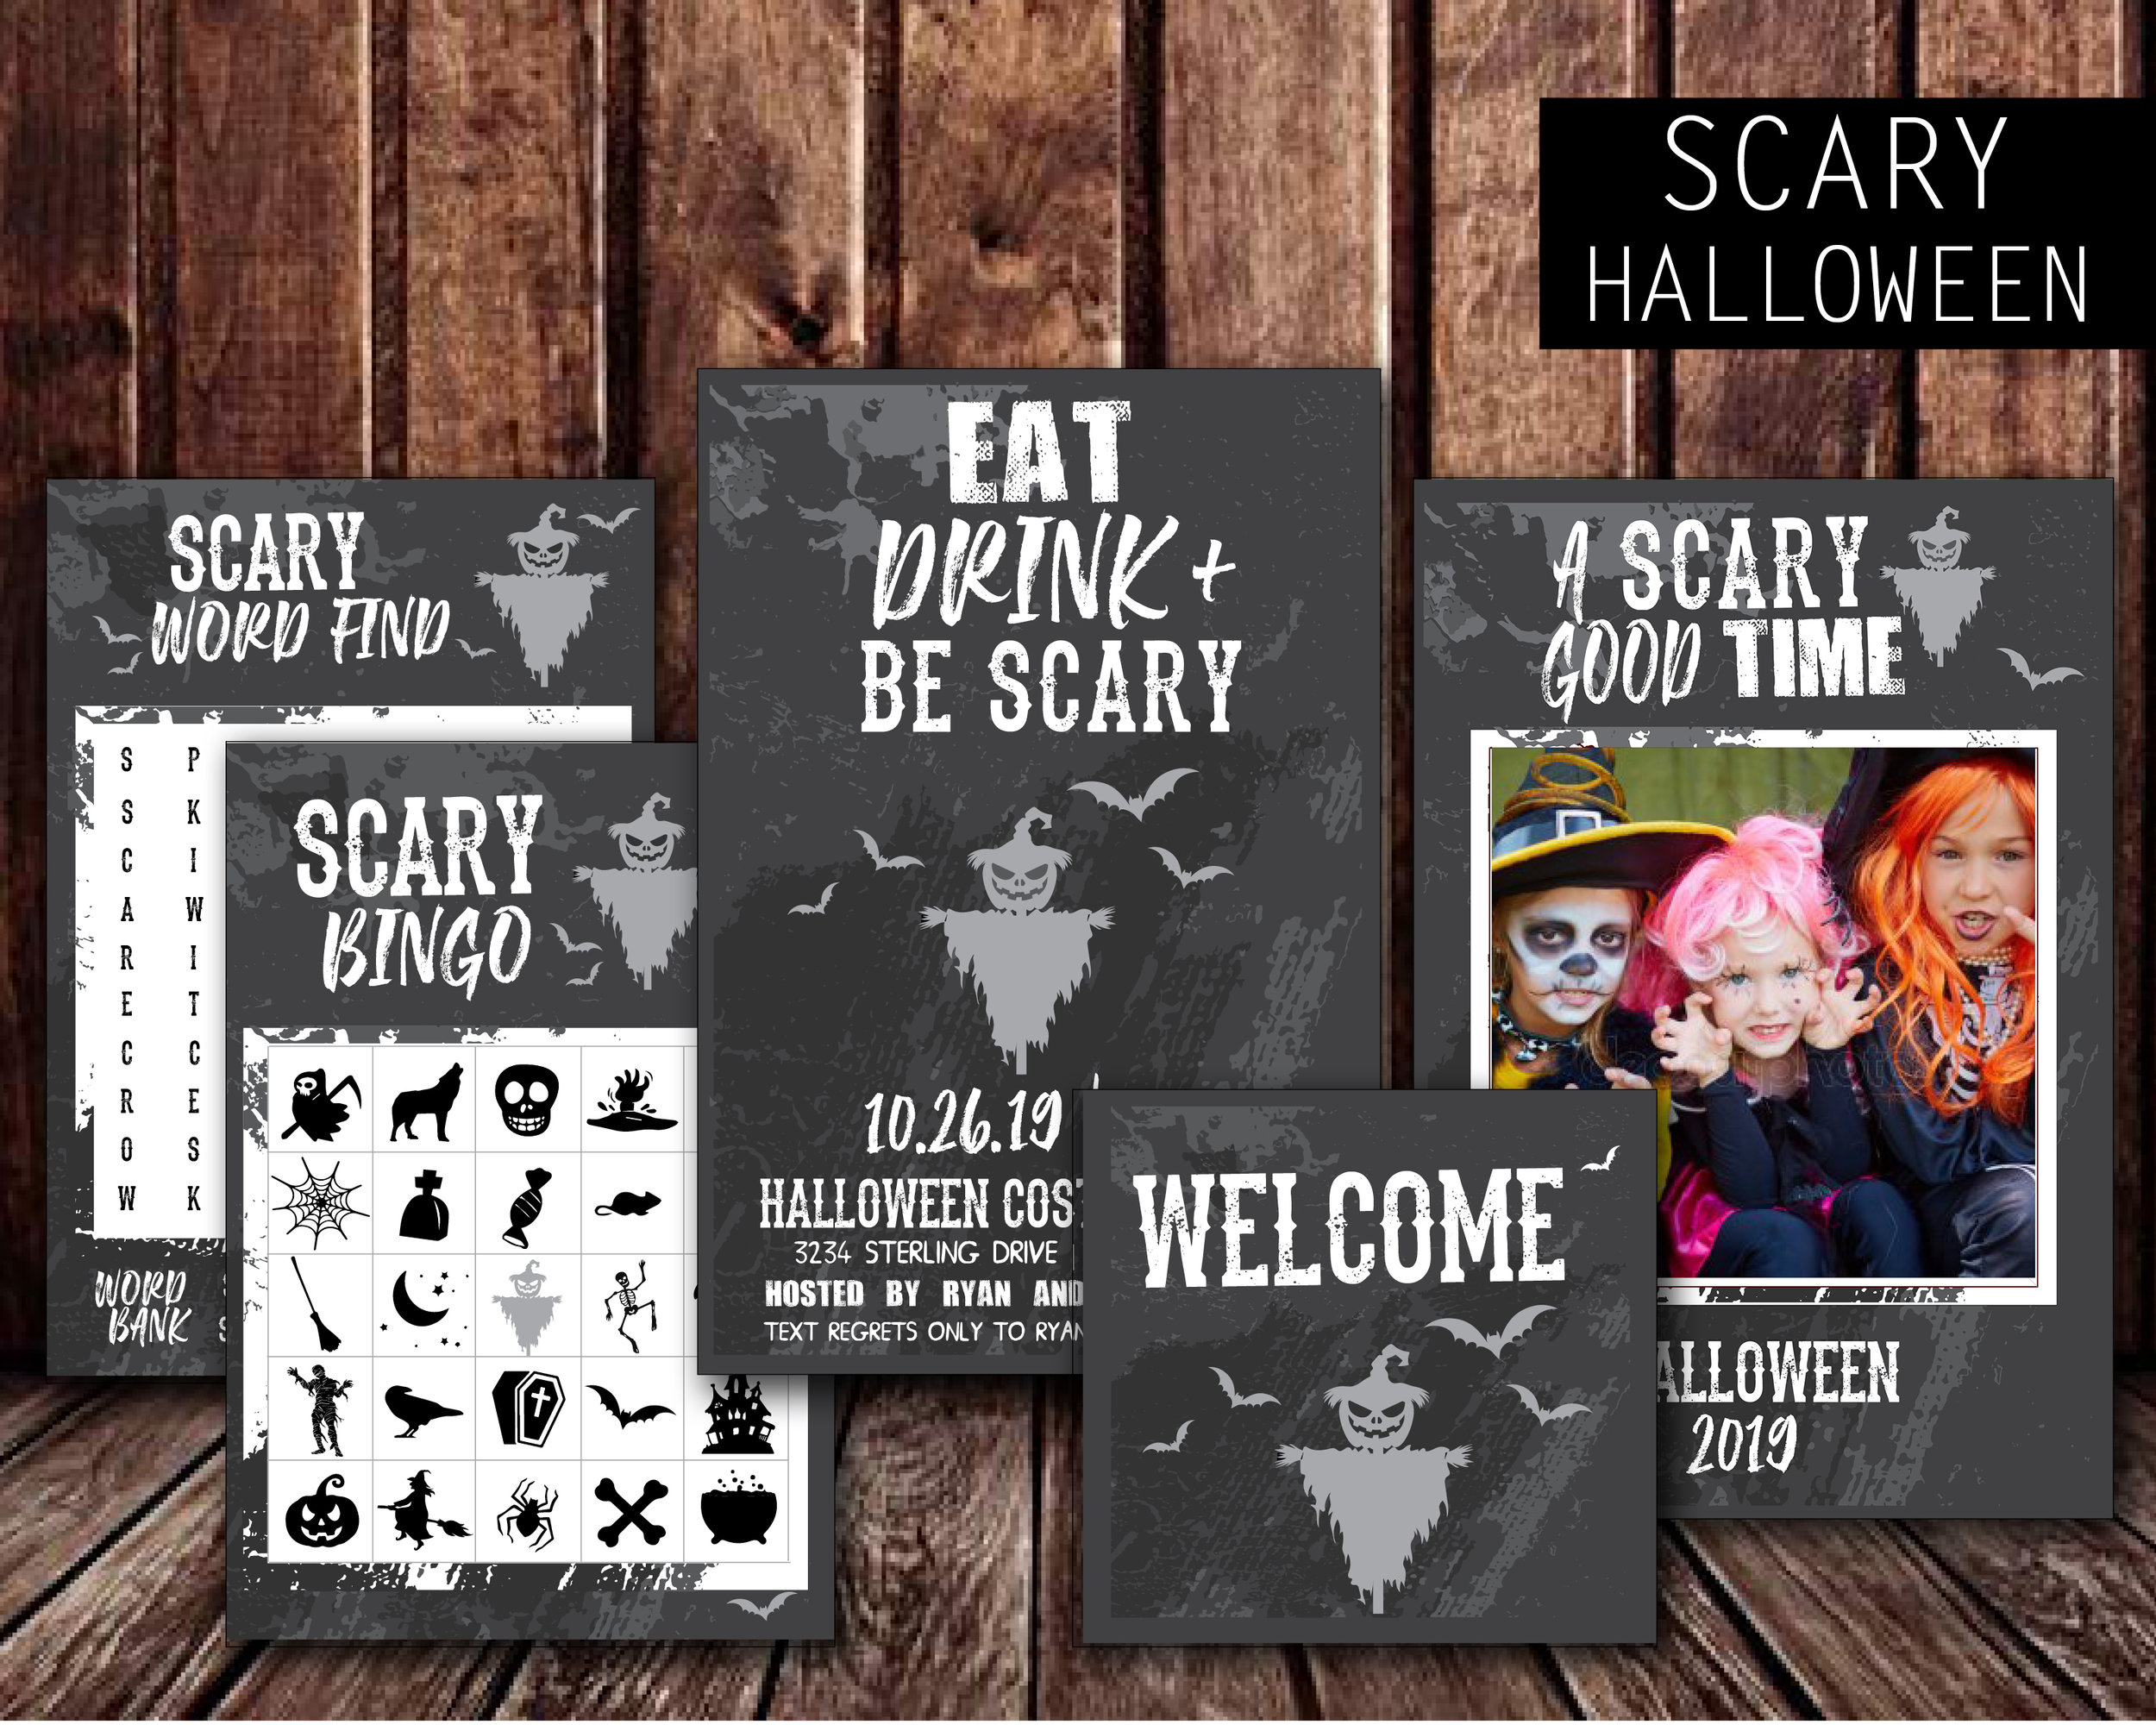 Party Invitation, Welcome Sign, Activity Games for Kids, Photo Booth Selfie Prop Frame